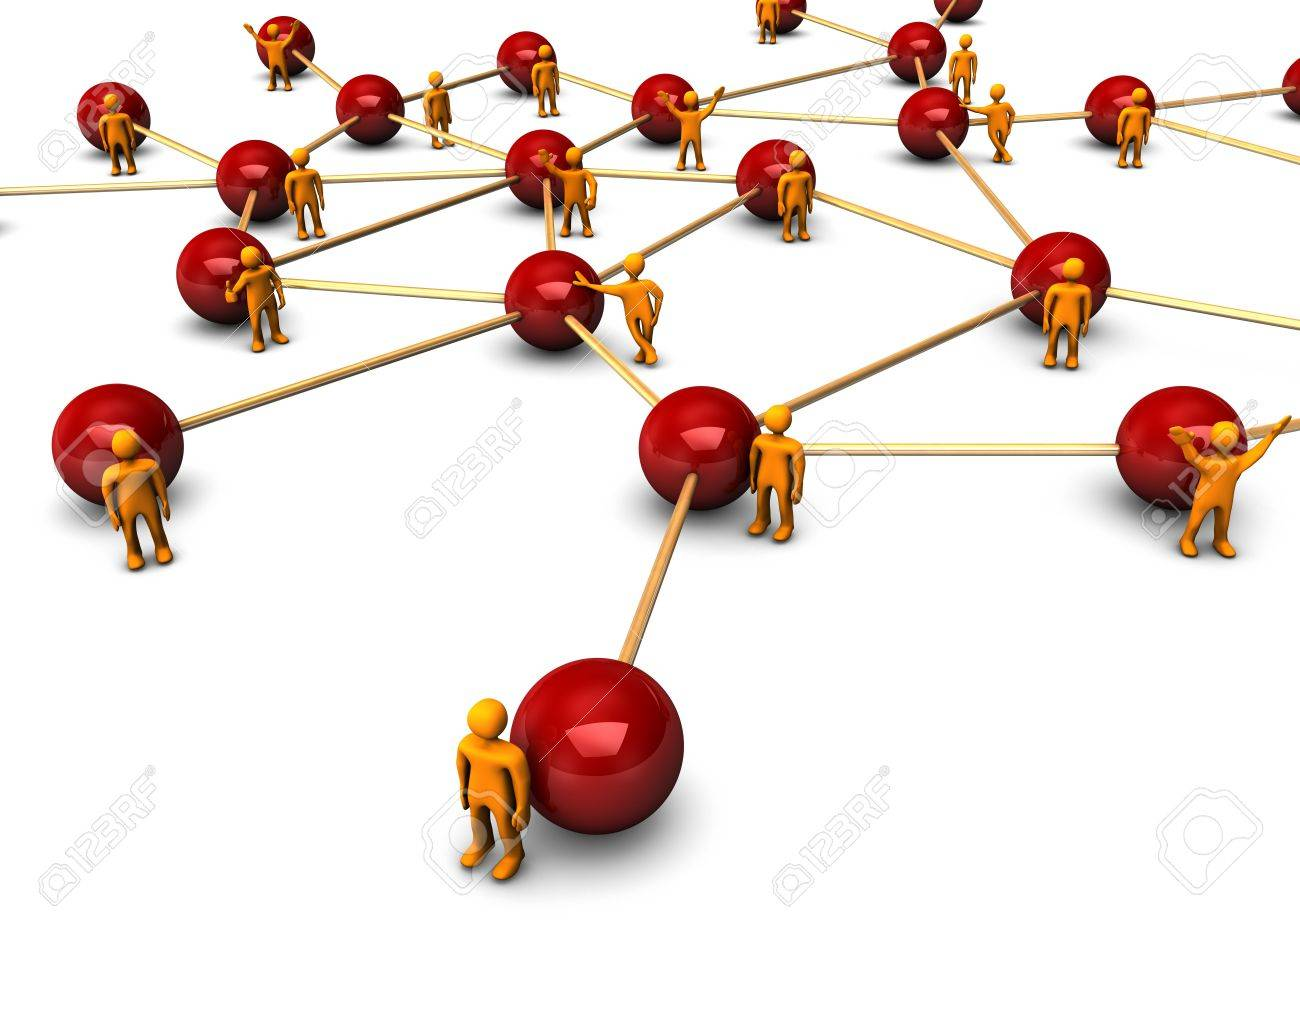 Abstractly rendering of the social network with funny orange persons, on the white background. Stock Photo - 7881499